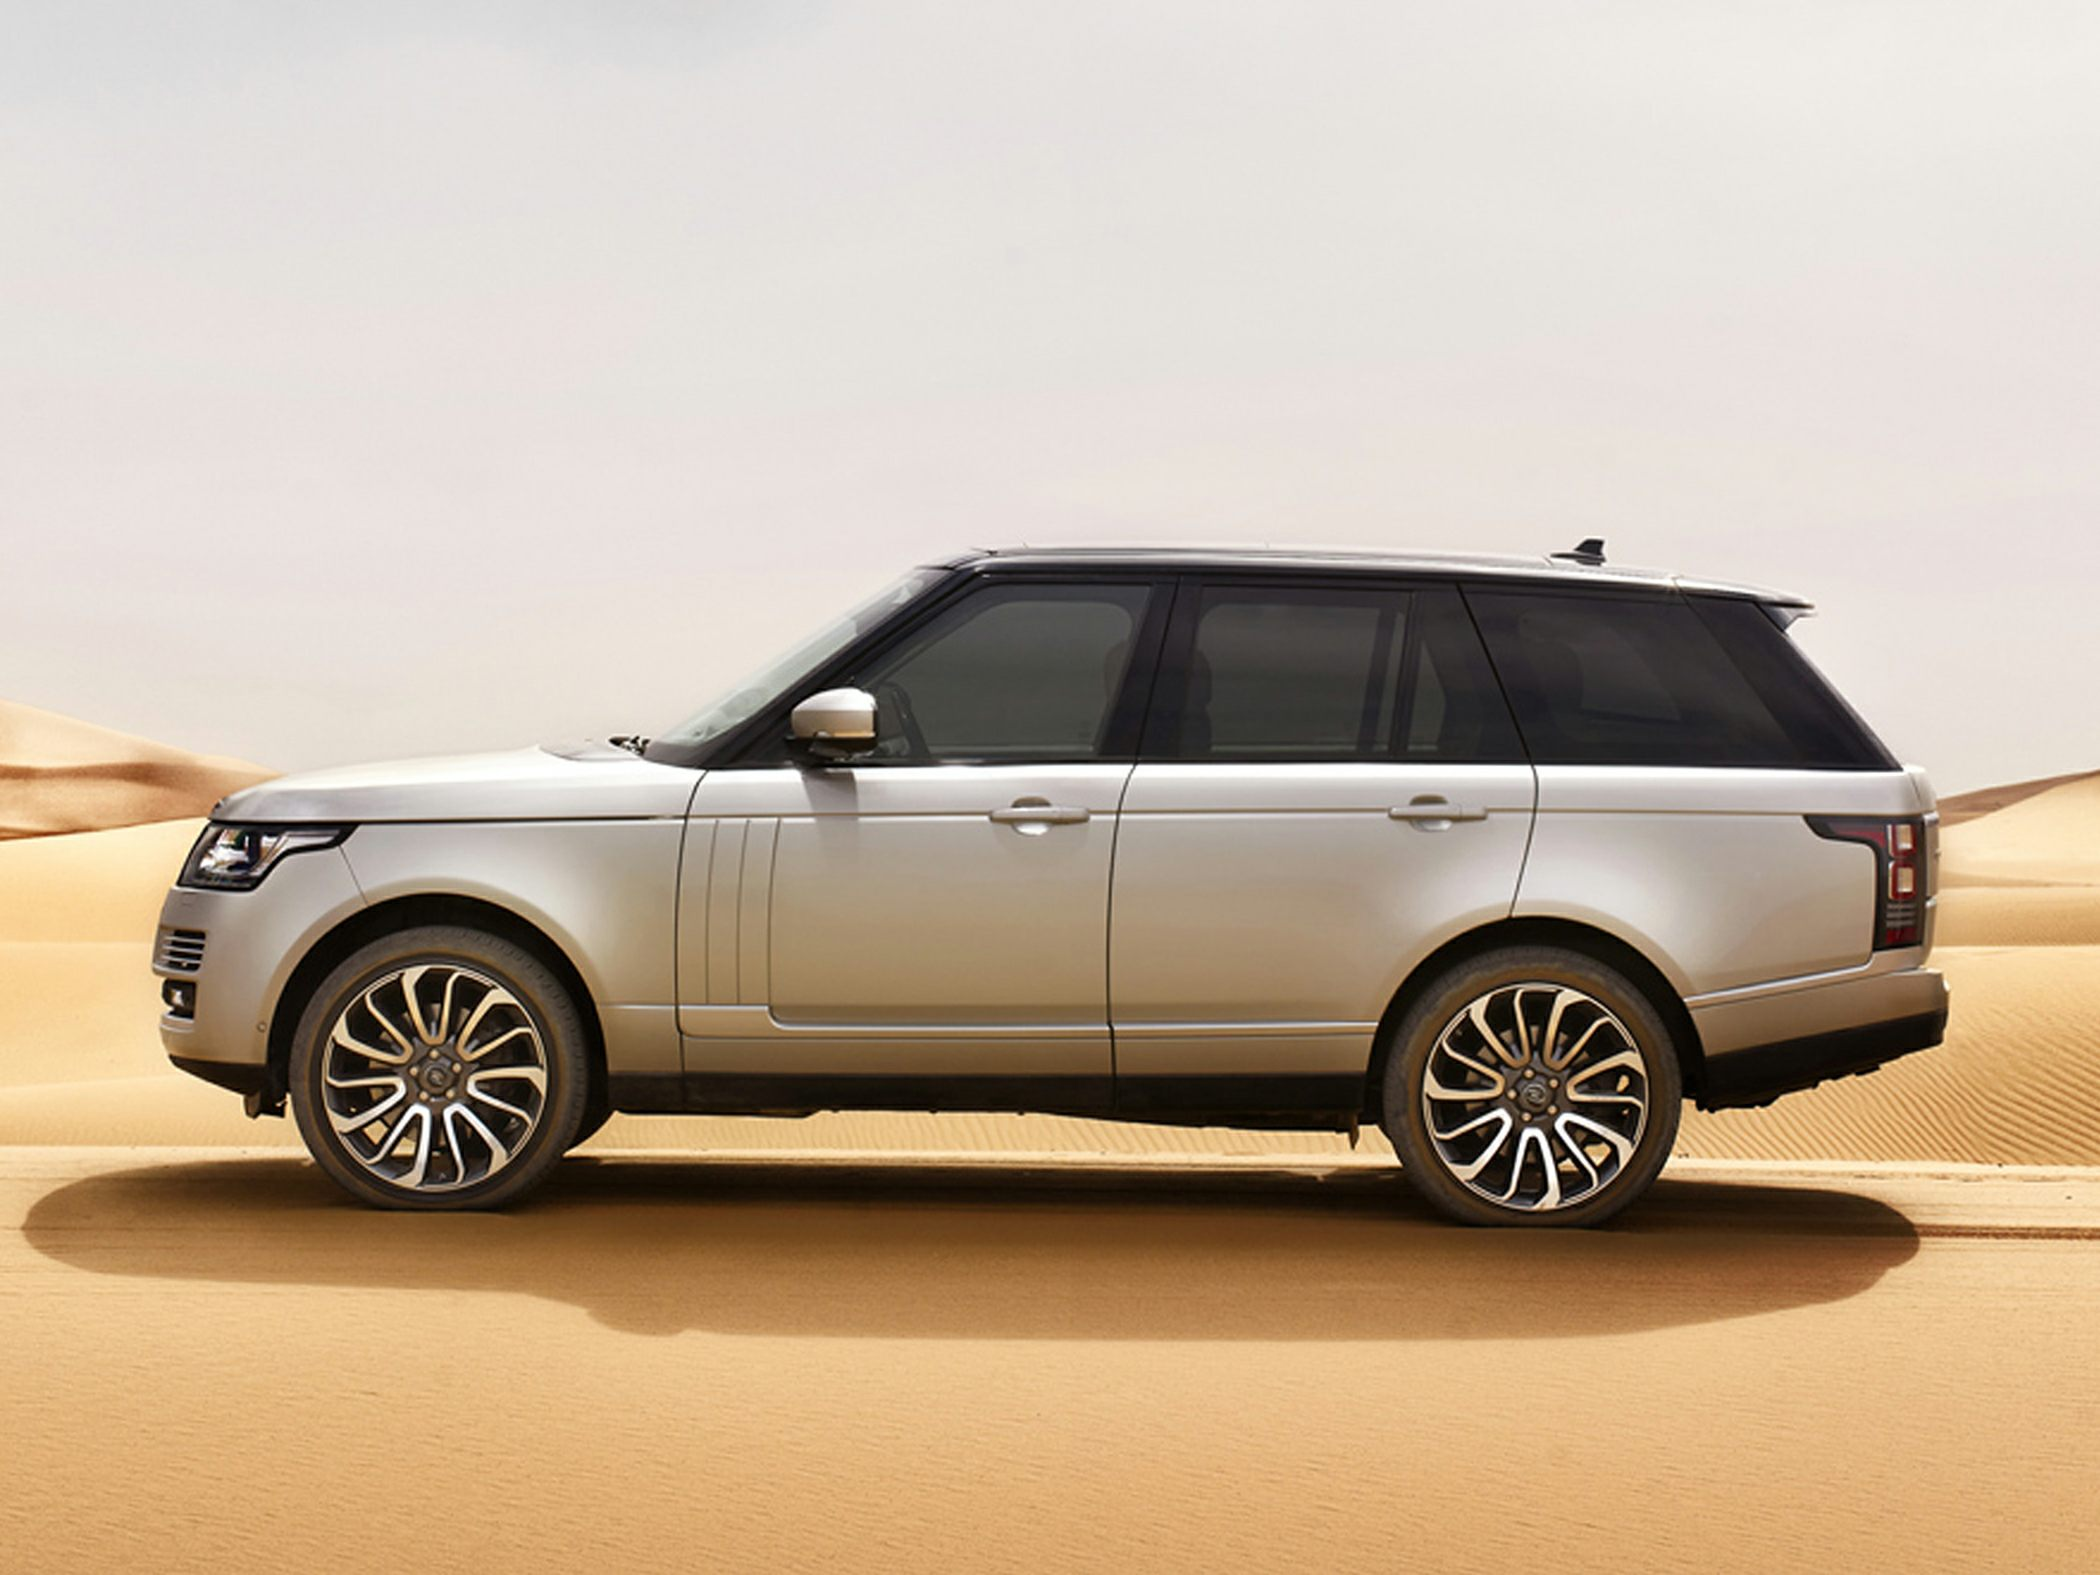 2017 land rover range rover deals prices incentives leases overview carsdirect. Black Bedroom Furniture Sets. Home Design Ideas